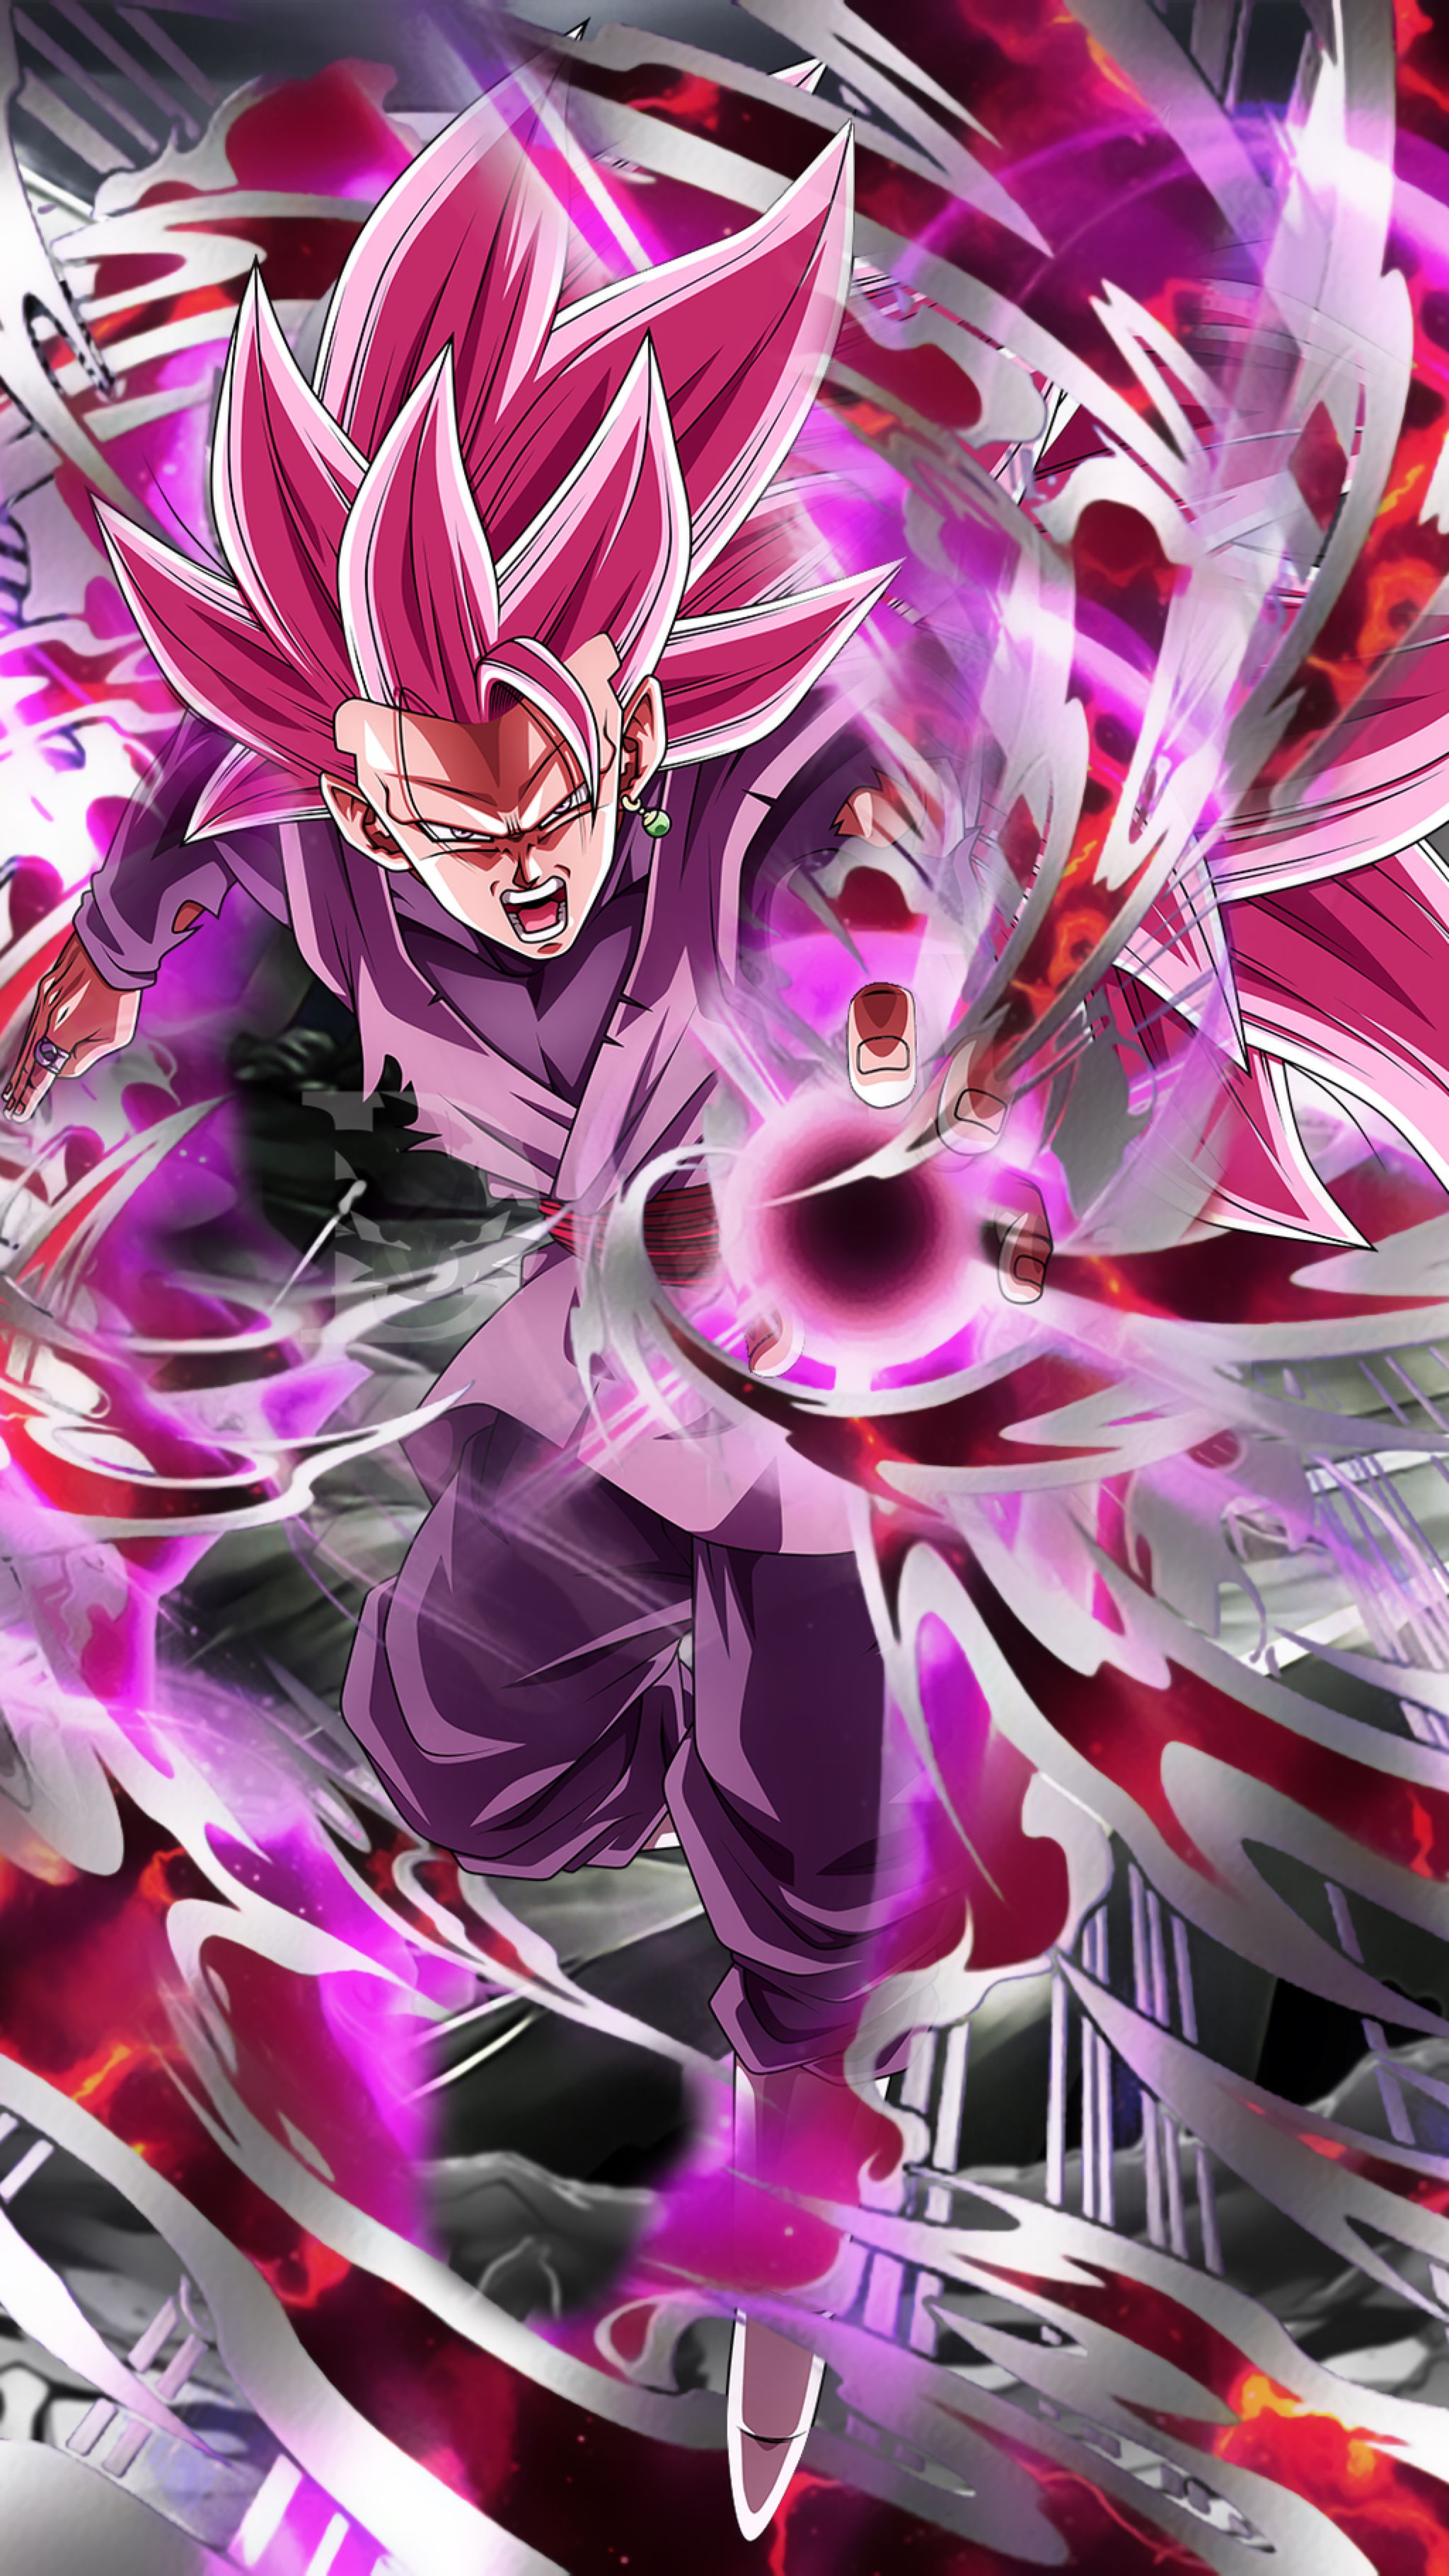 Goku Black Super Saiyan Rose 3 Wallpaper By Davidmaxsteinbach On DeviantArt